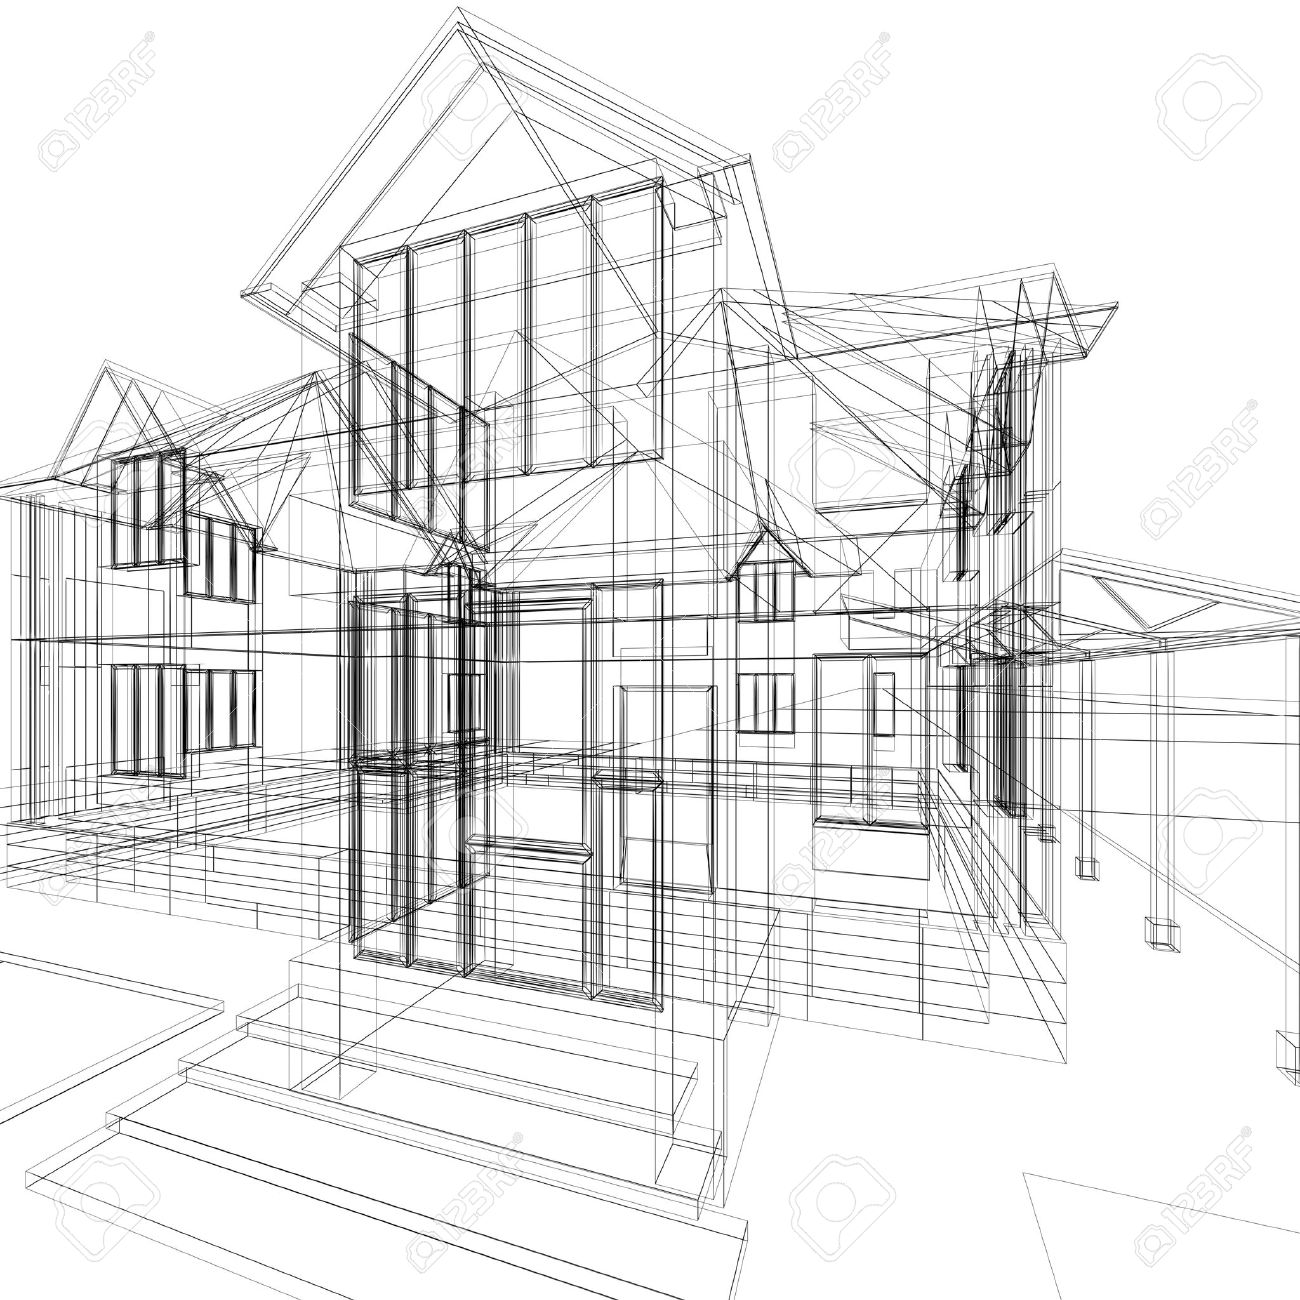 House Architecture Sketch perfect house architecture sketch minimalistic r in design decorating